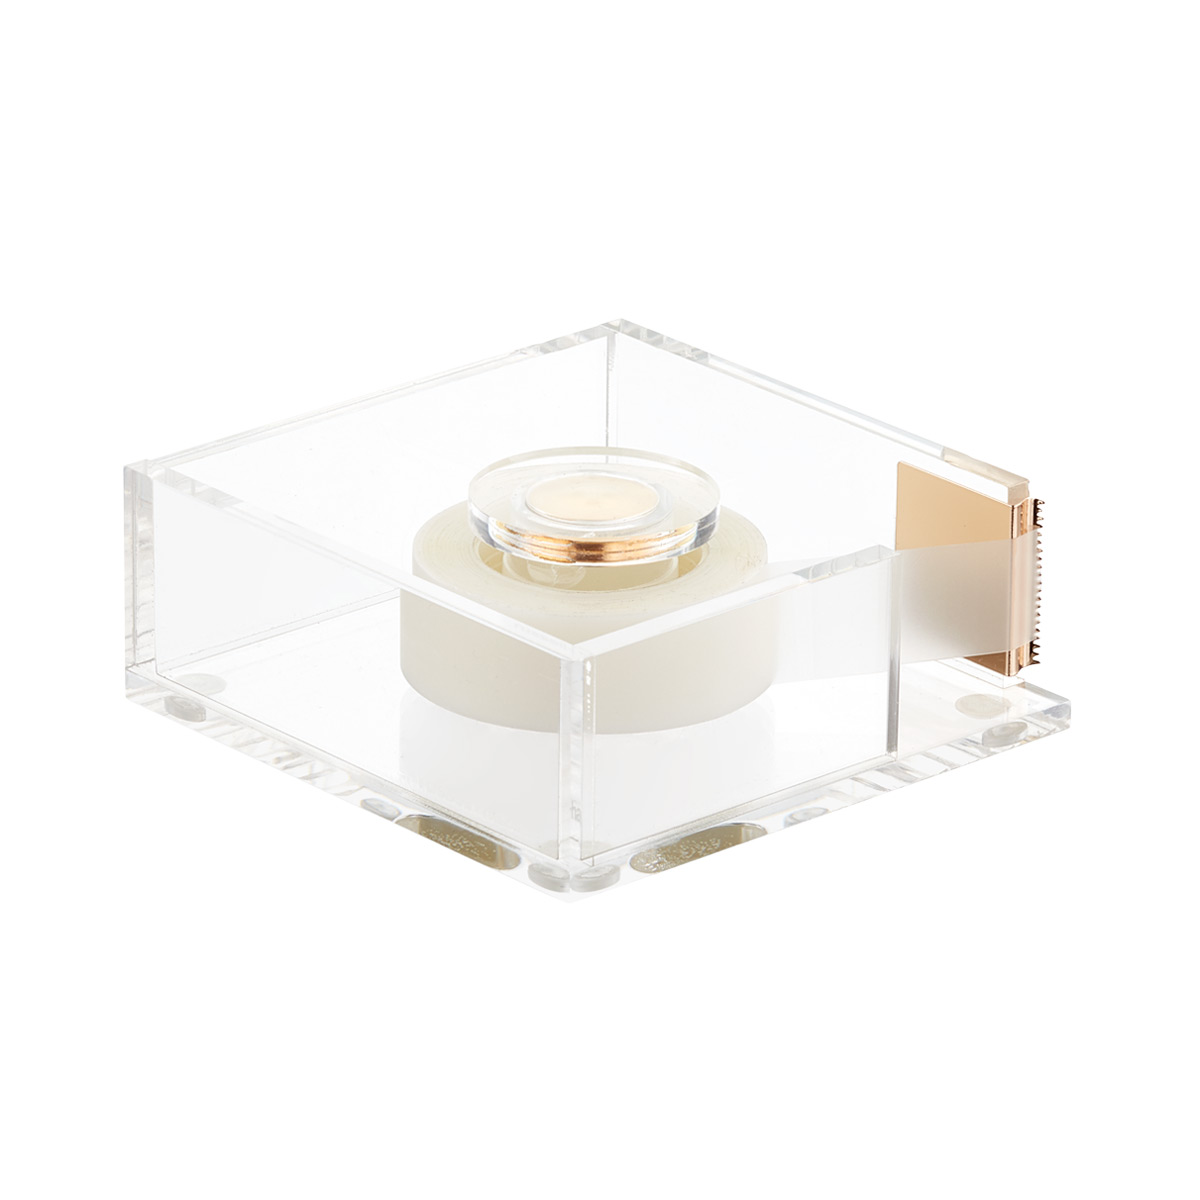 Russell Hazel Acrylic Square Tape Dispenser